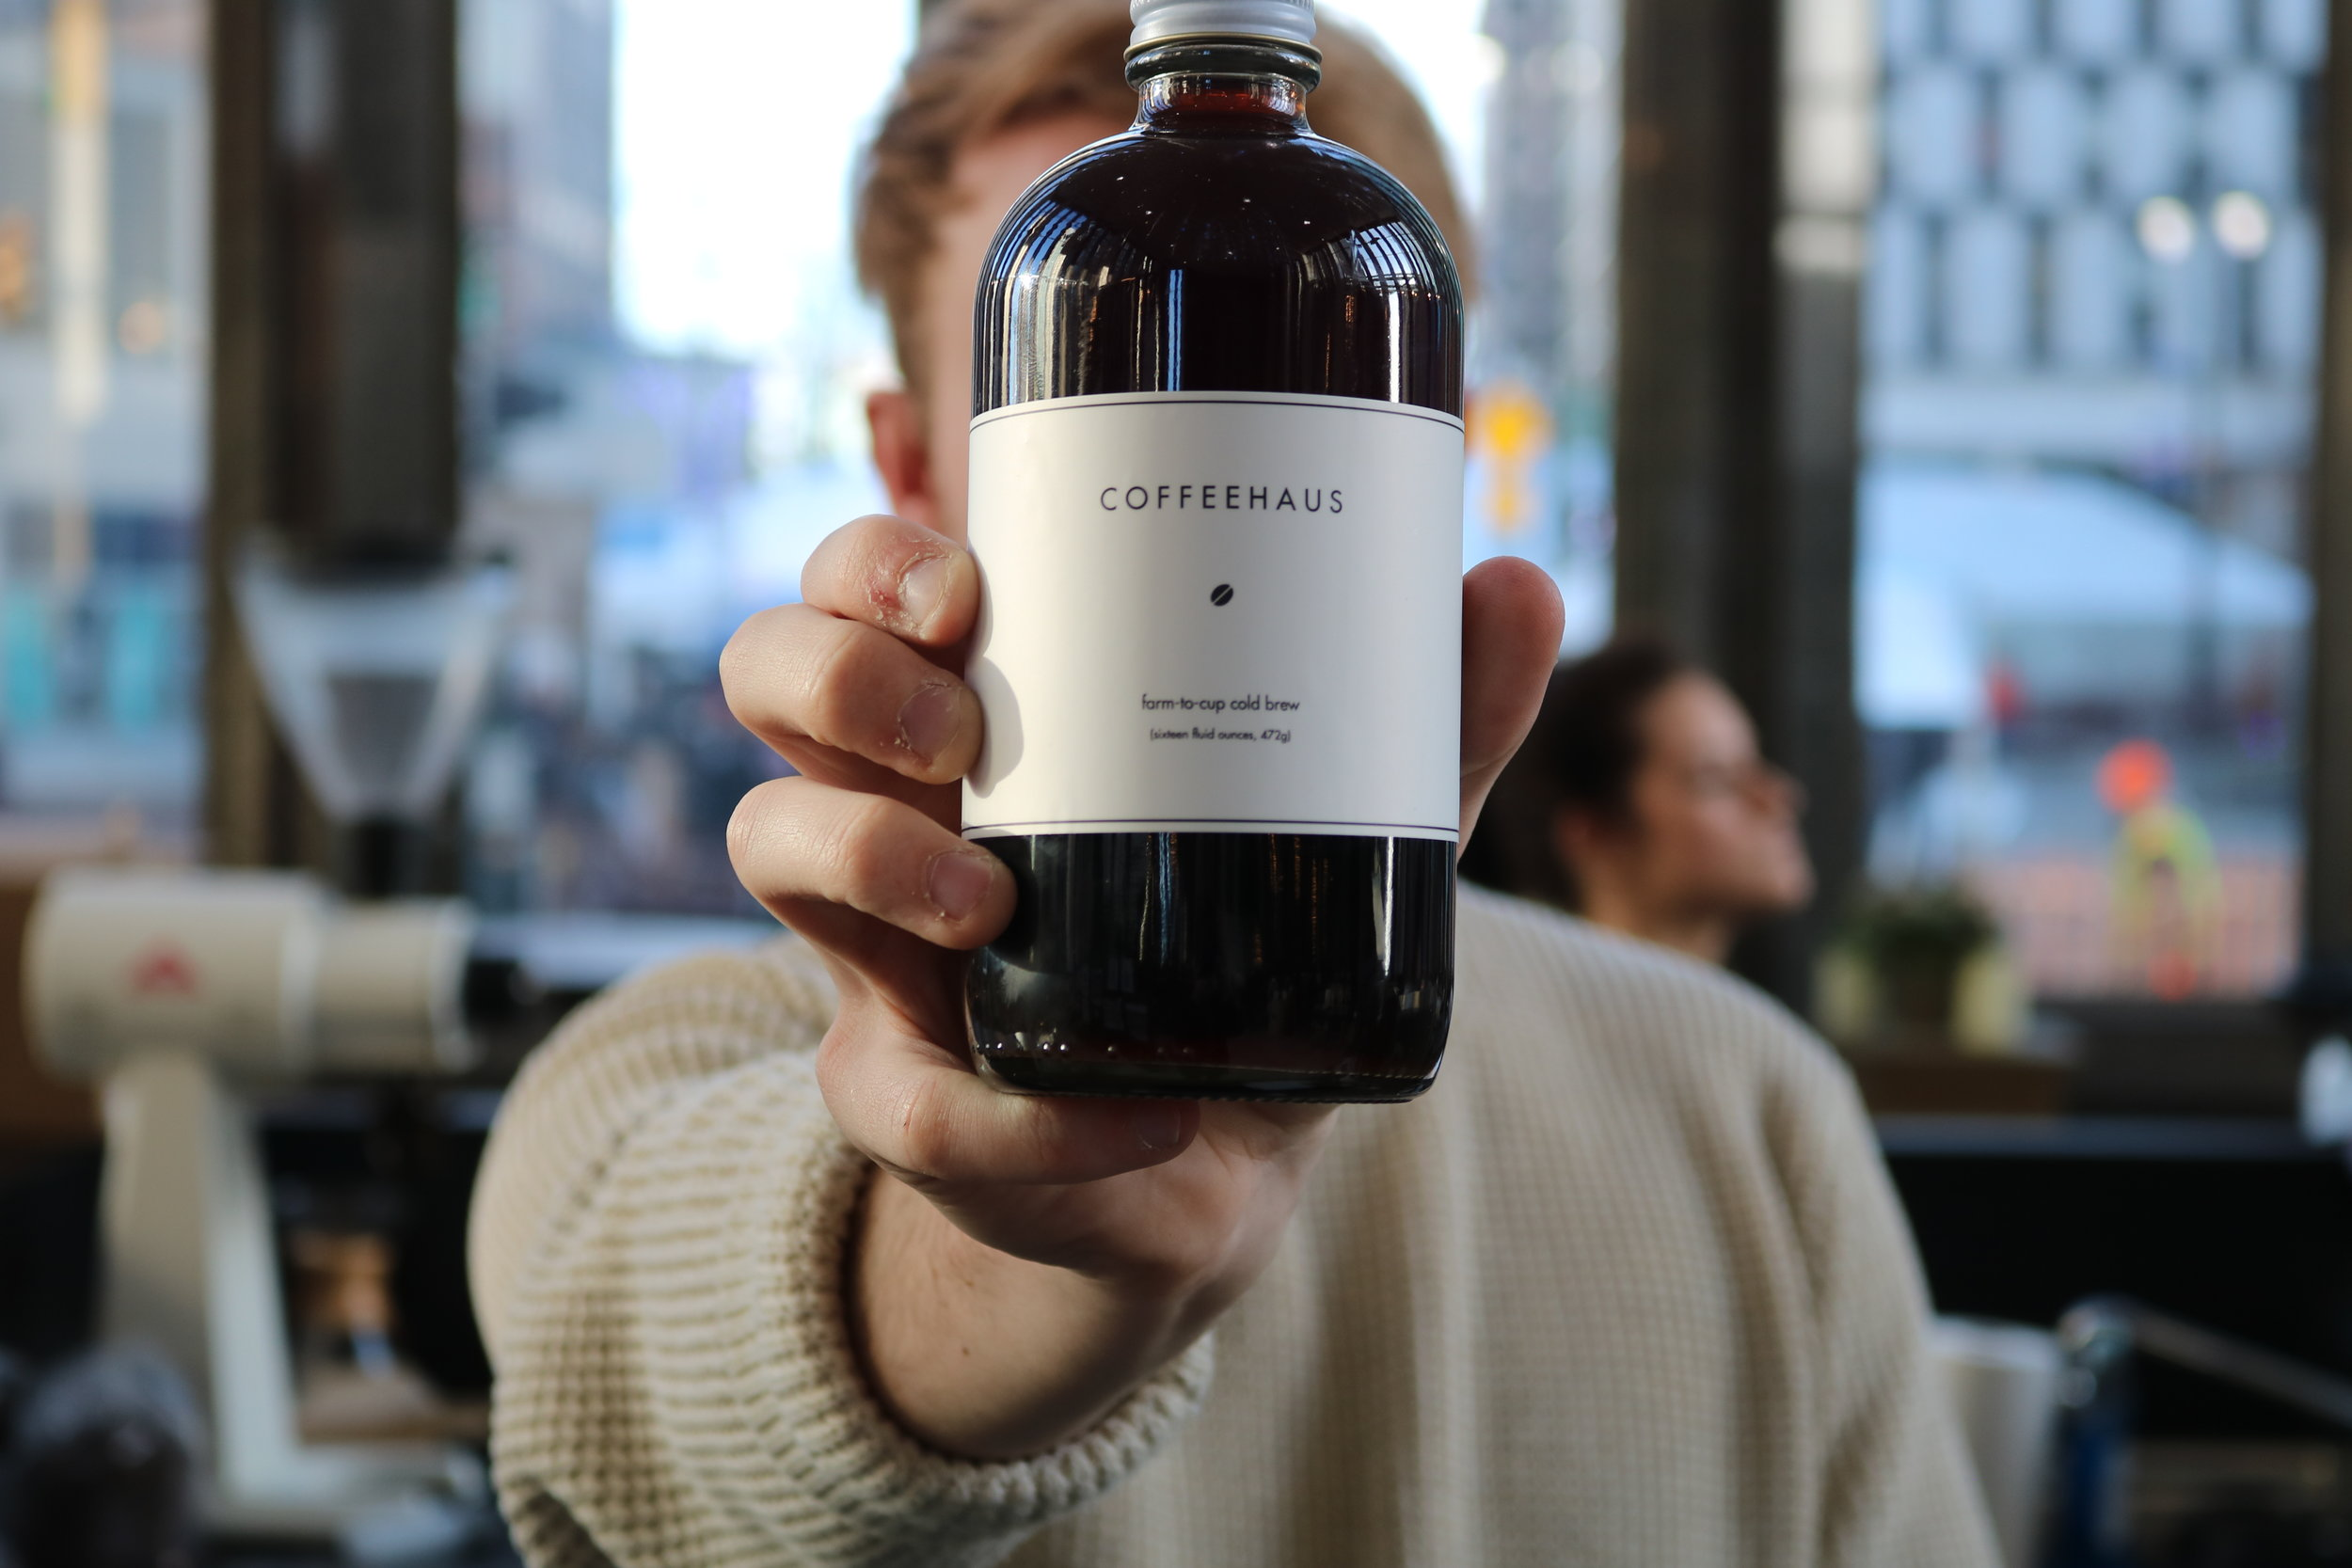 Owner Luke showing off the cold brew bottle.